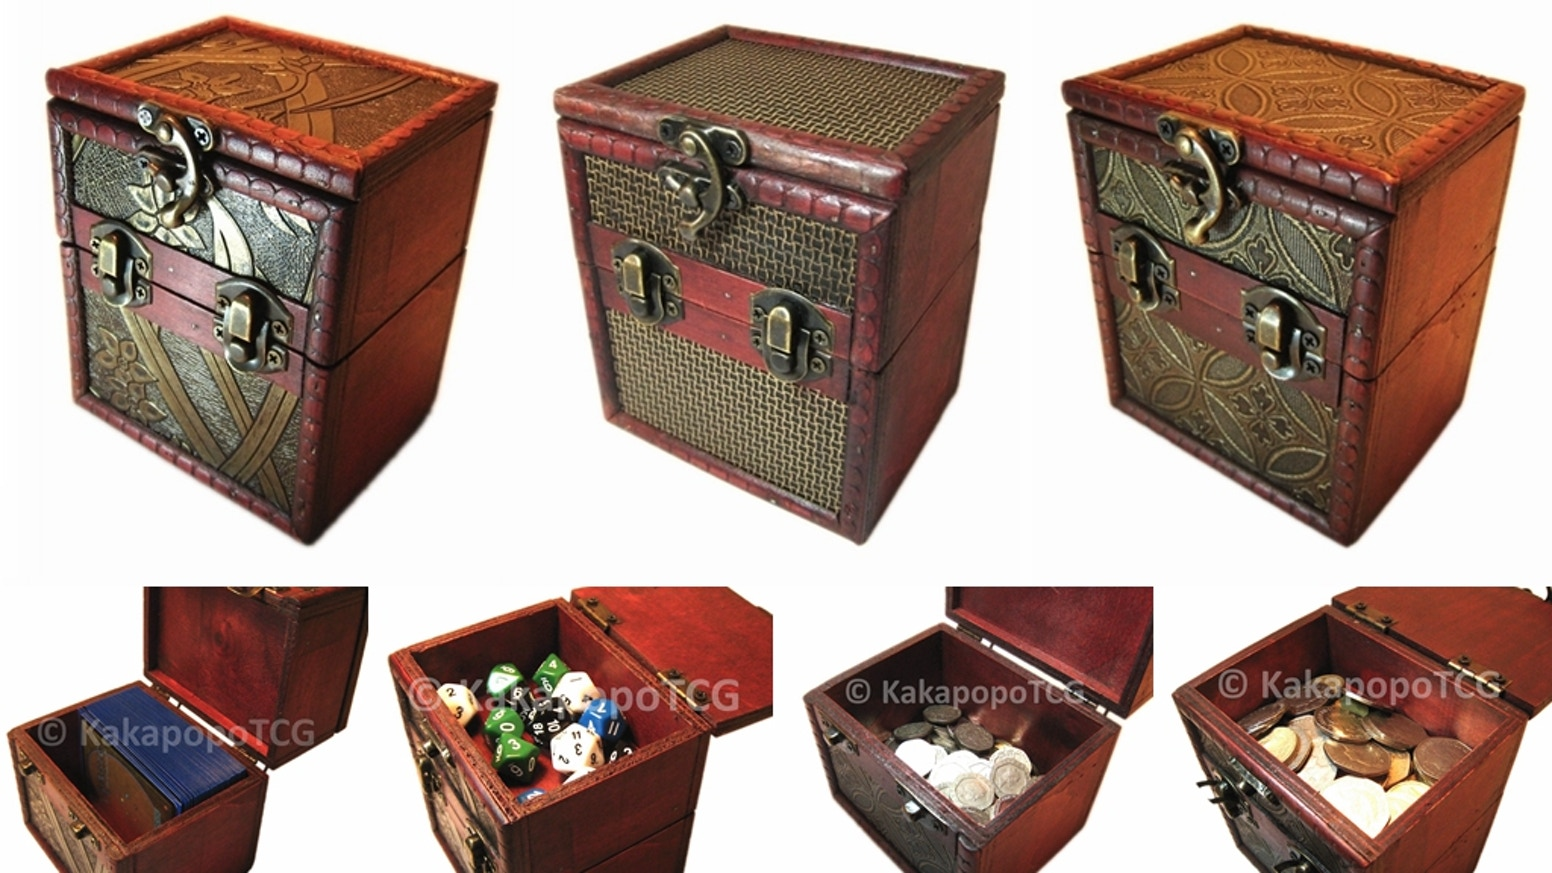 For storing Card Games: Mtg Magic the Gathering, EDH decks, Yugioh, Pokemon, Vanguard, Lord of the Rings, Star Wars, and Fantasy Coins